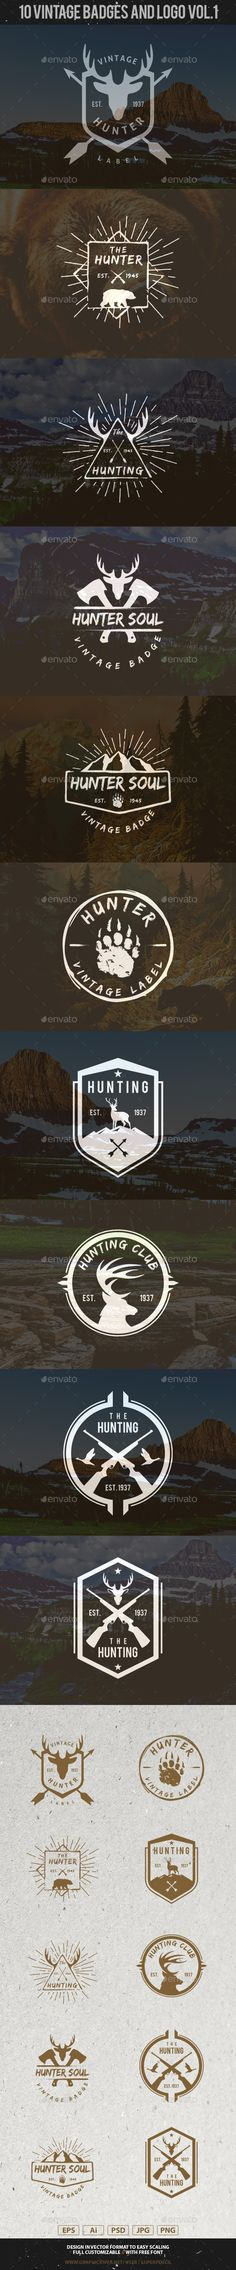 10 Hunting Vintage Badges and Logos Vol.1